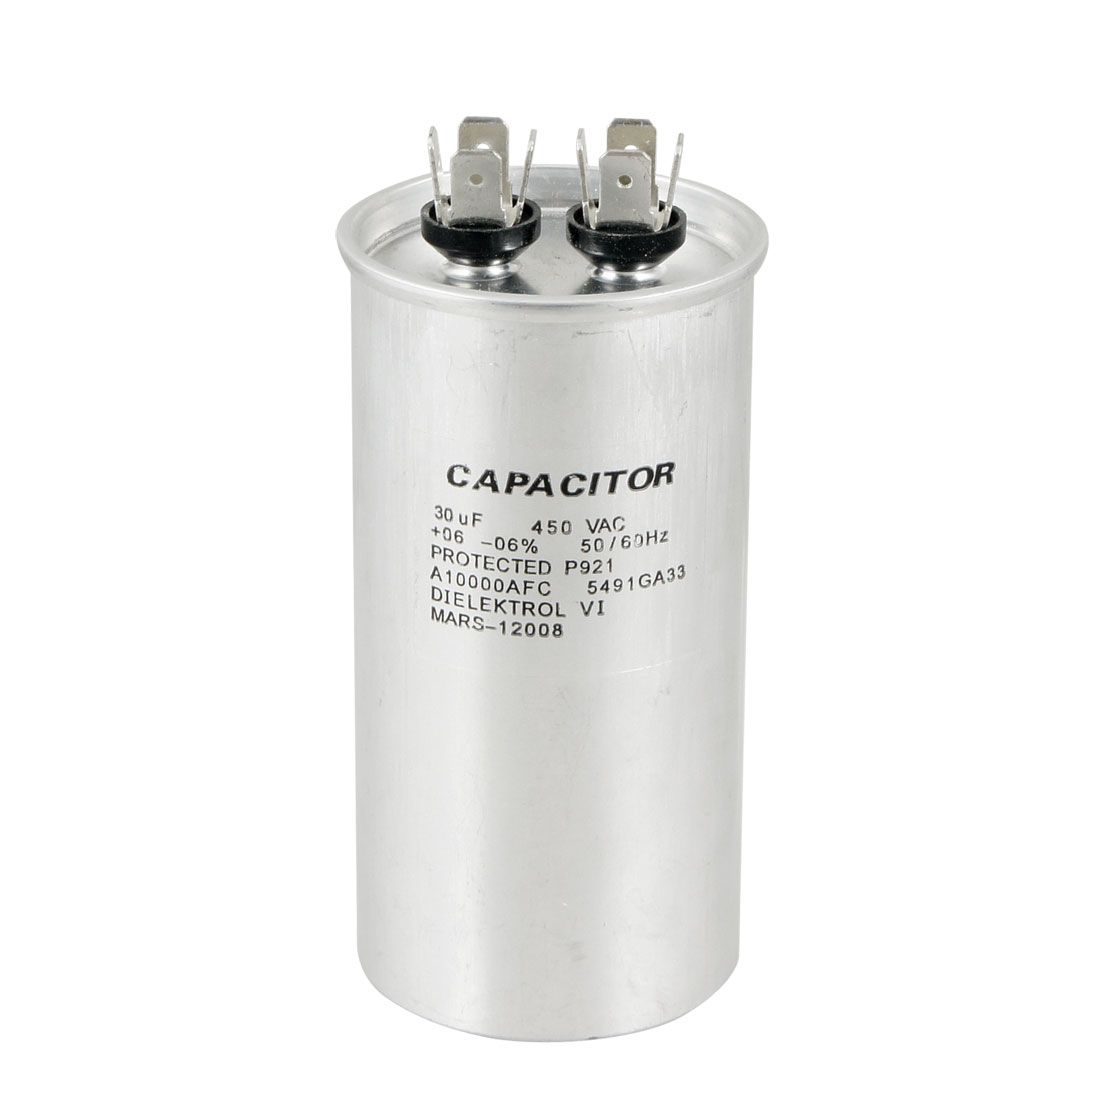 Silver Tone 450VAC 30uF Cylindrical Air Conditioning Motor Running P921 Capacitor